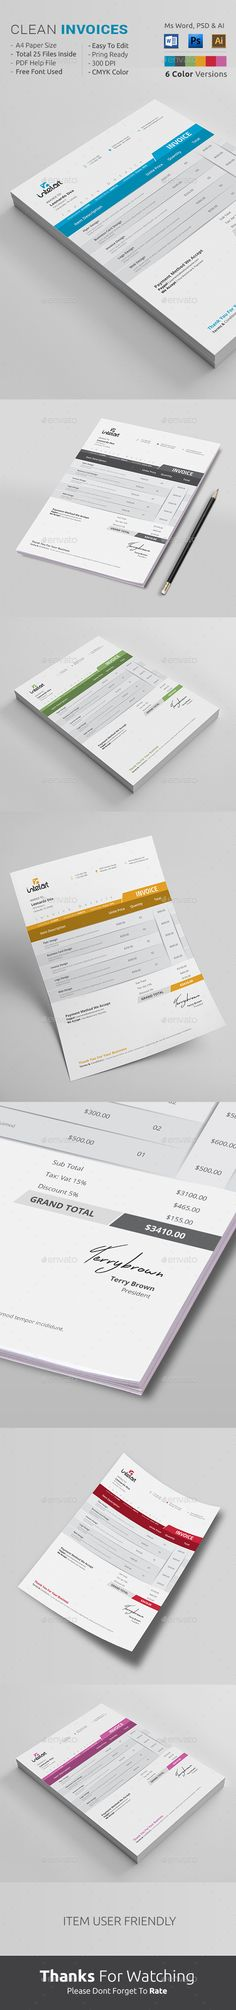 20 Creative Invoice \ Proposal Template Designs Template - proposal template microsoft word